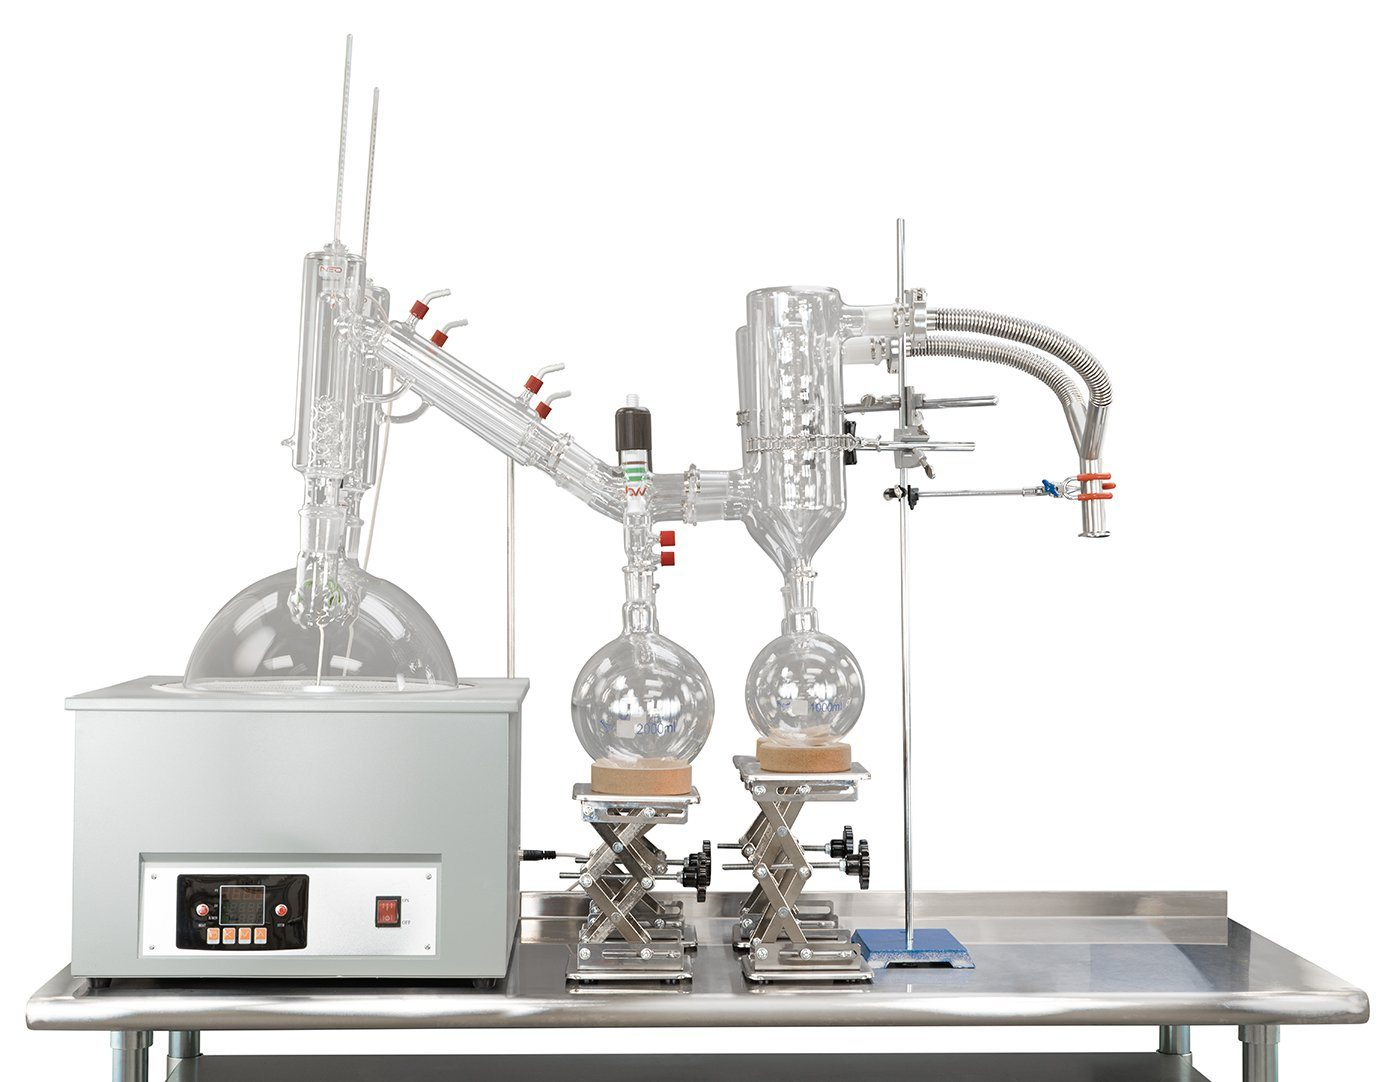 20L Neocision Dual Head Short Path Distillation Kit Shop All Categories Neocision